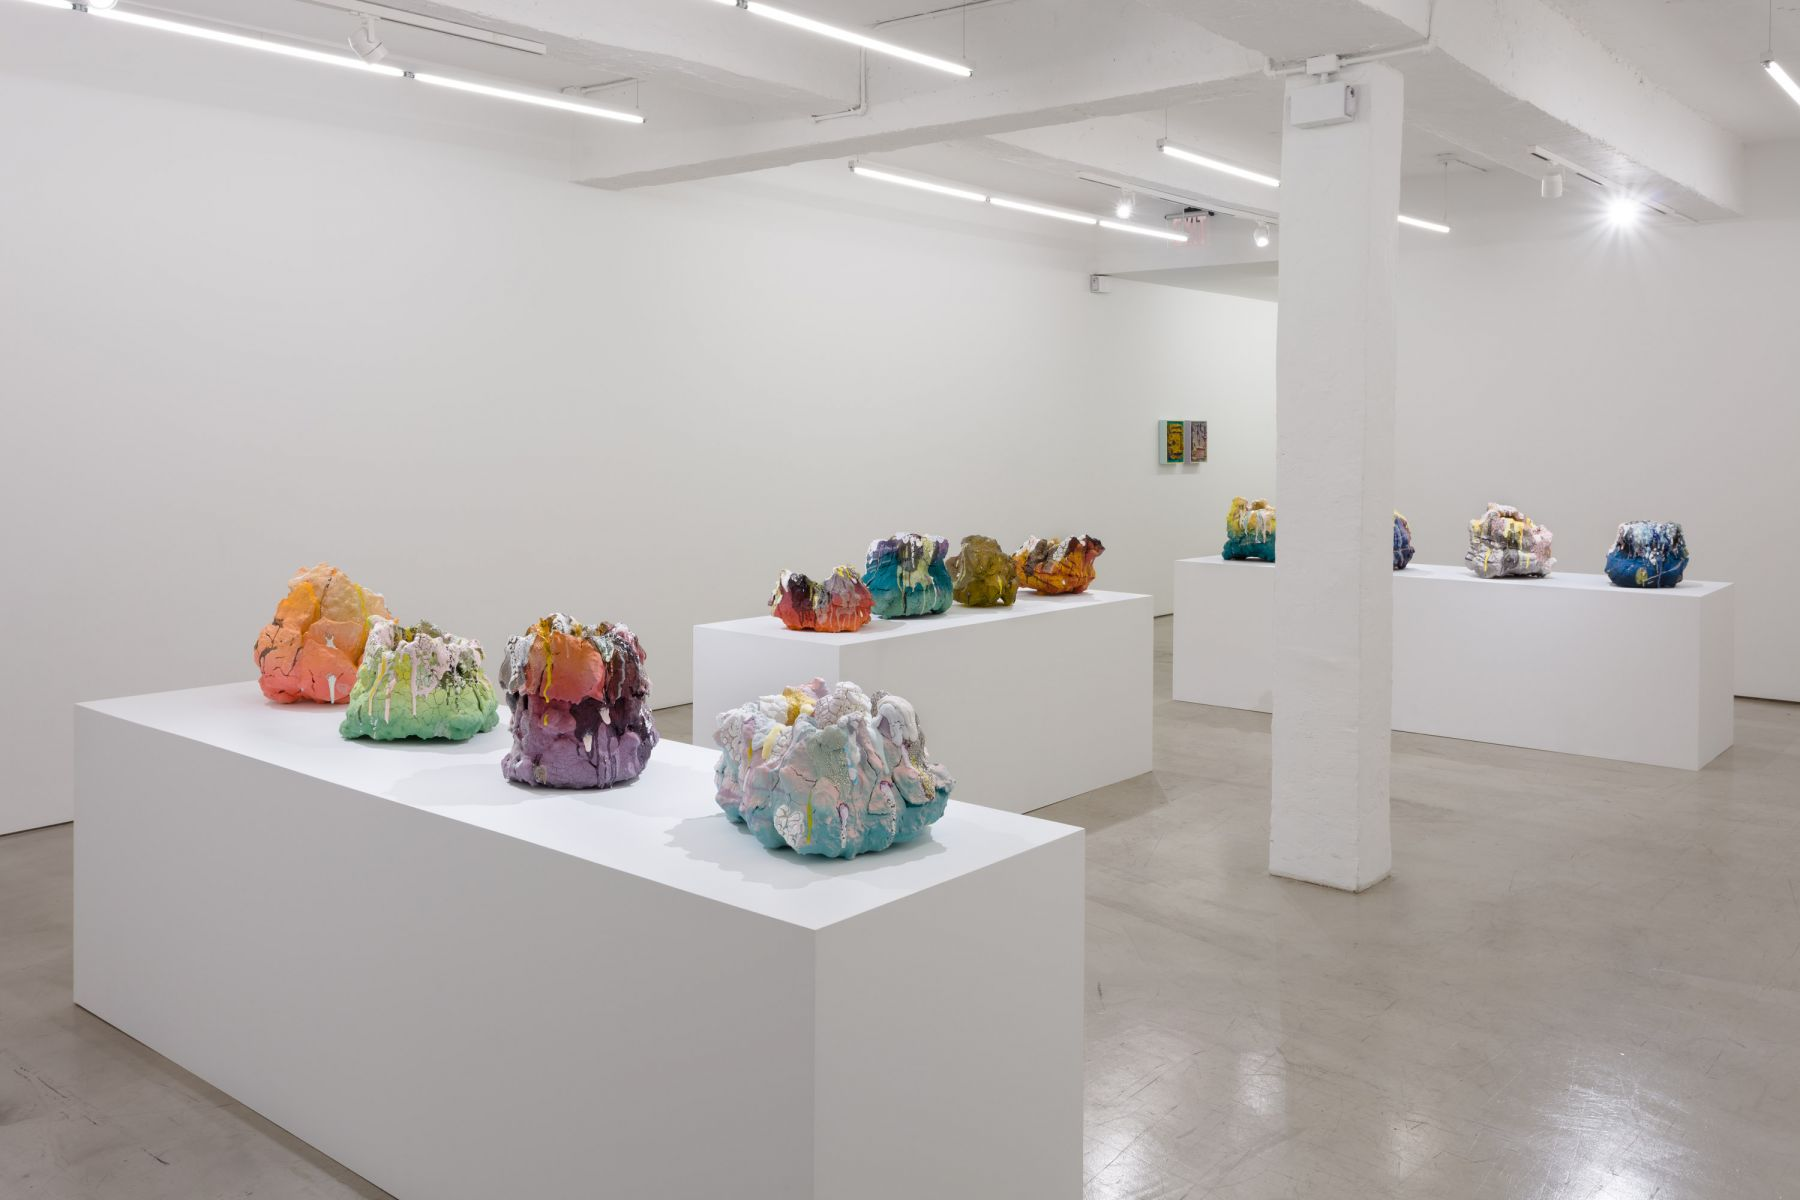 Gallery installation view, 2017